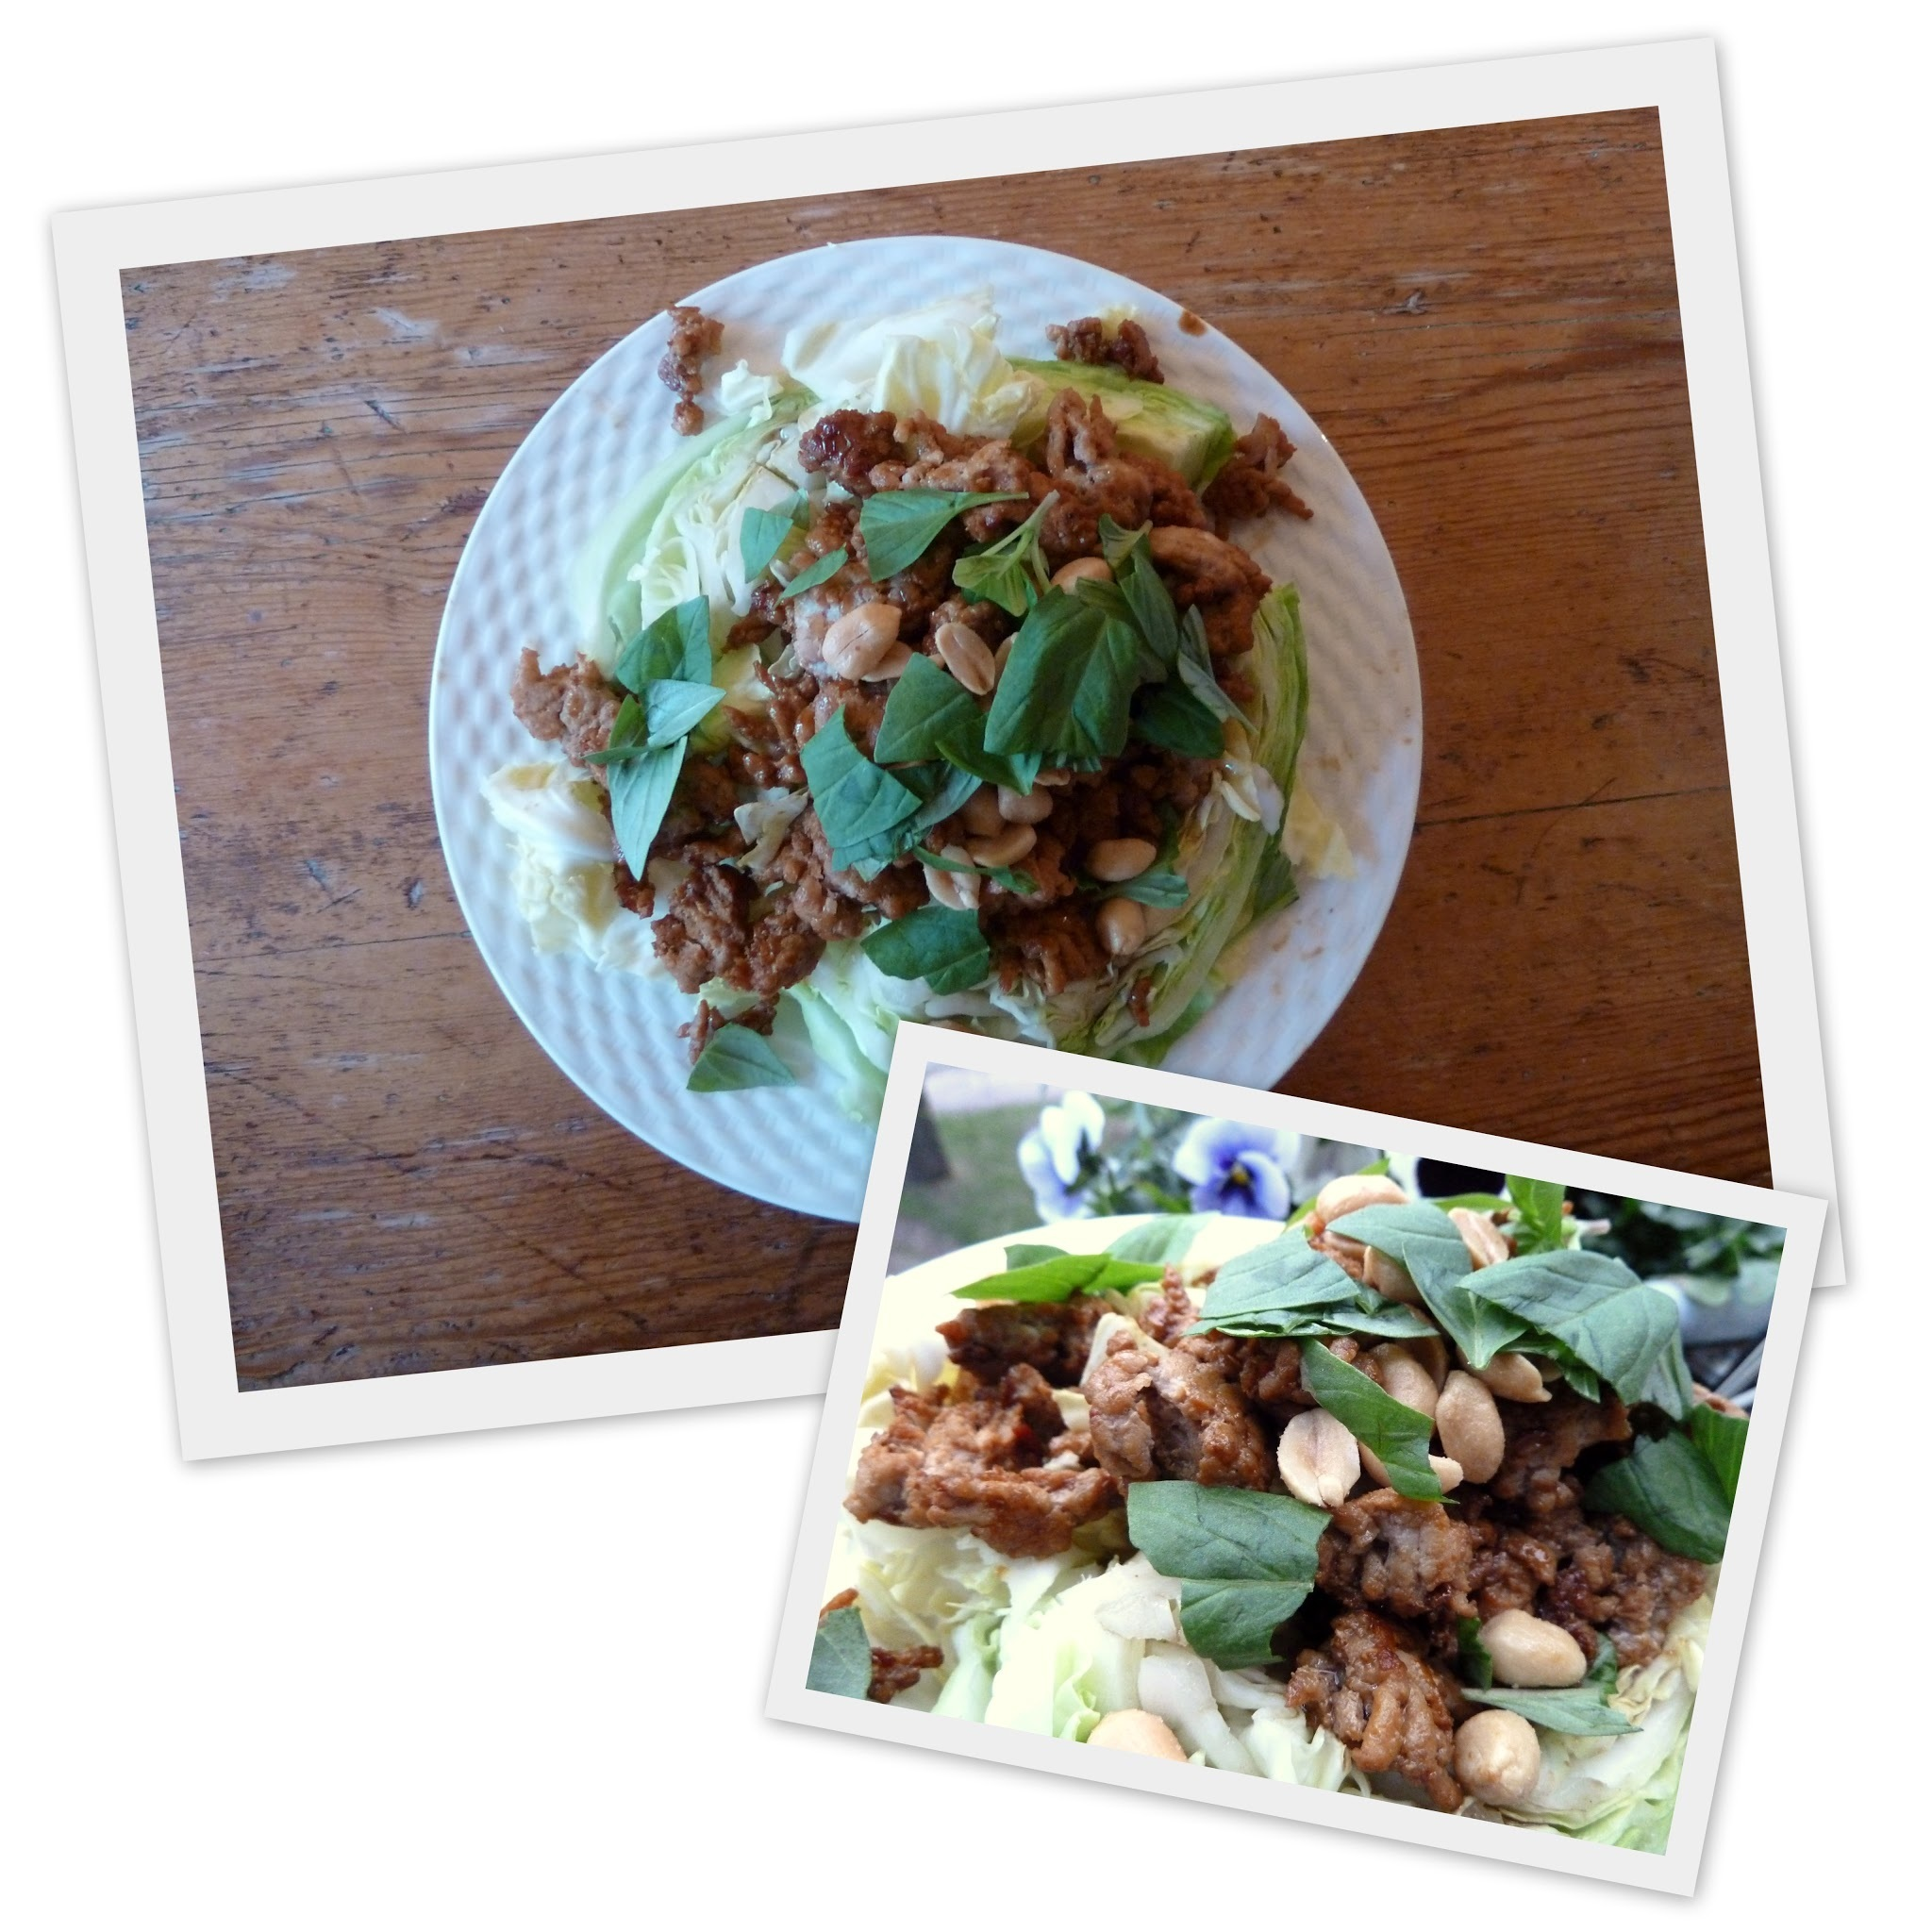 Fast food my way 5; Asian cabbage salad with minced chicken